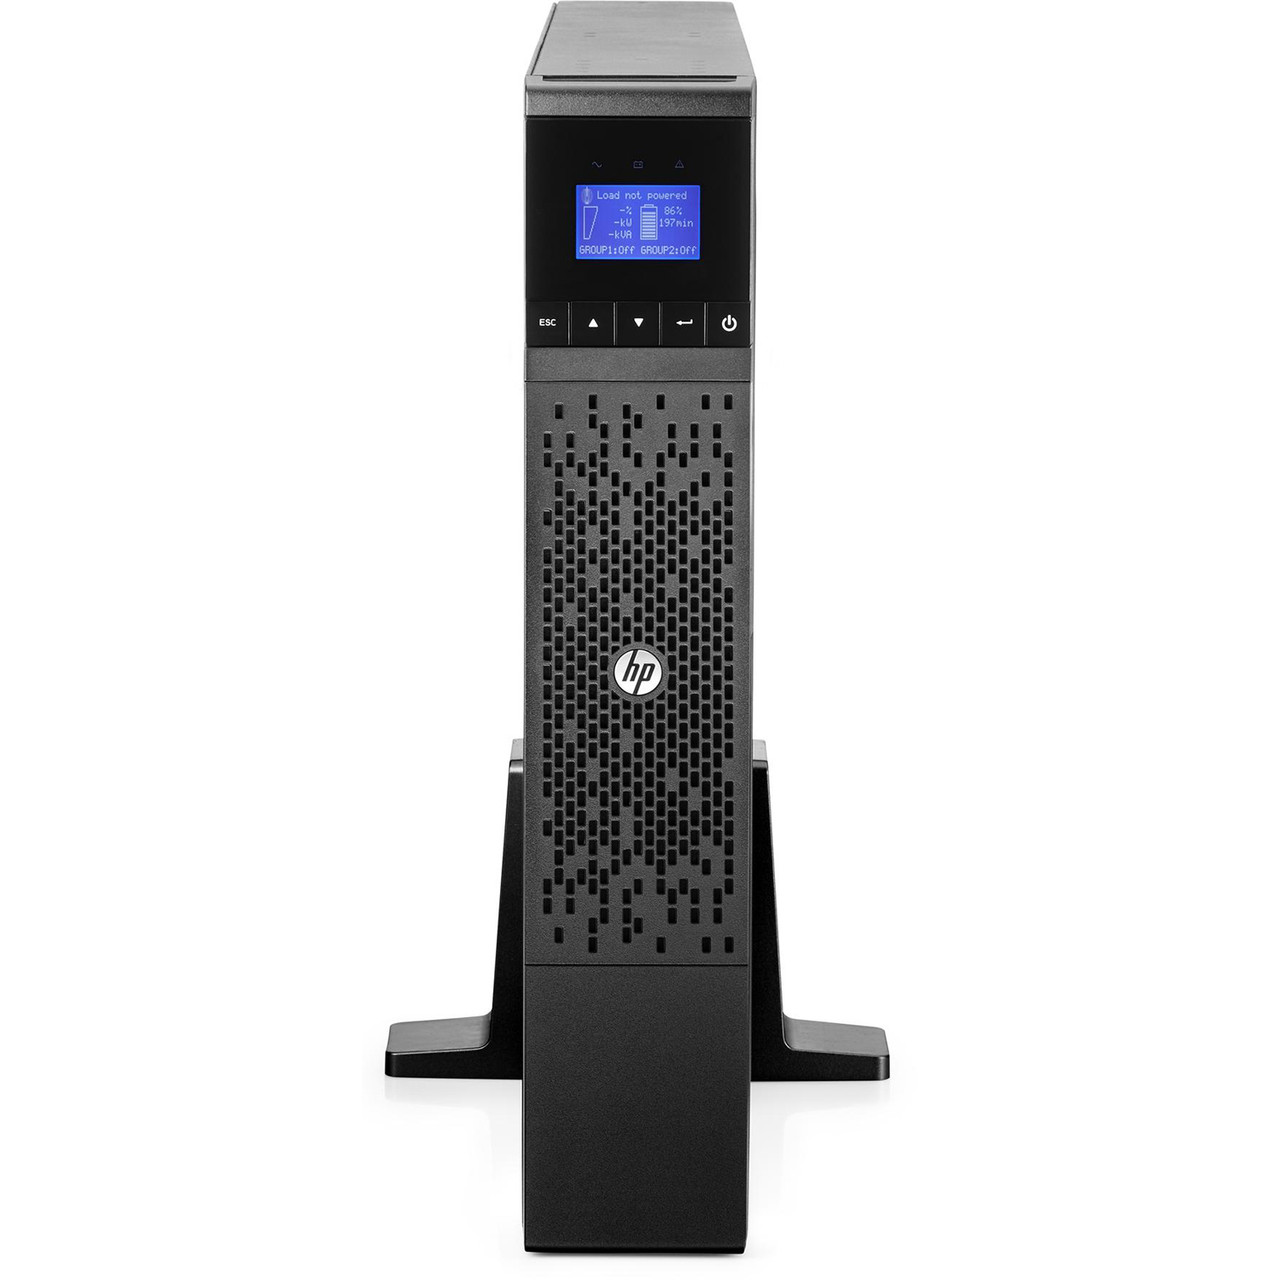 ИБП HP Enterprise R/T3000 G4 INTL 3000VA